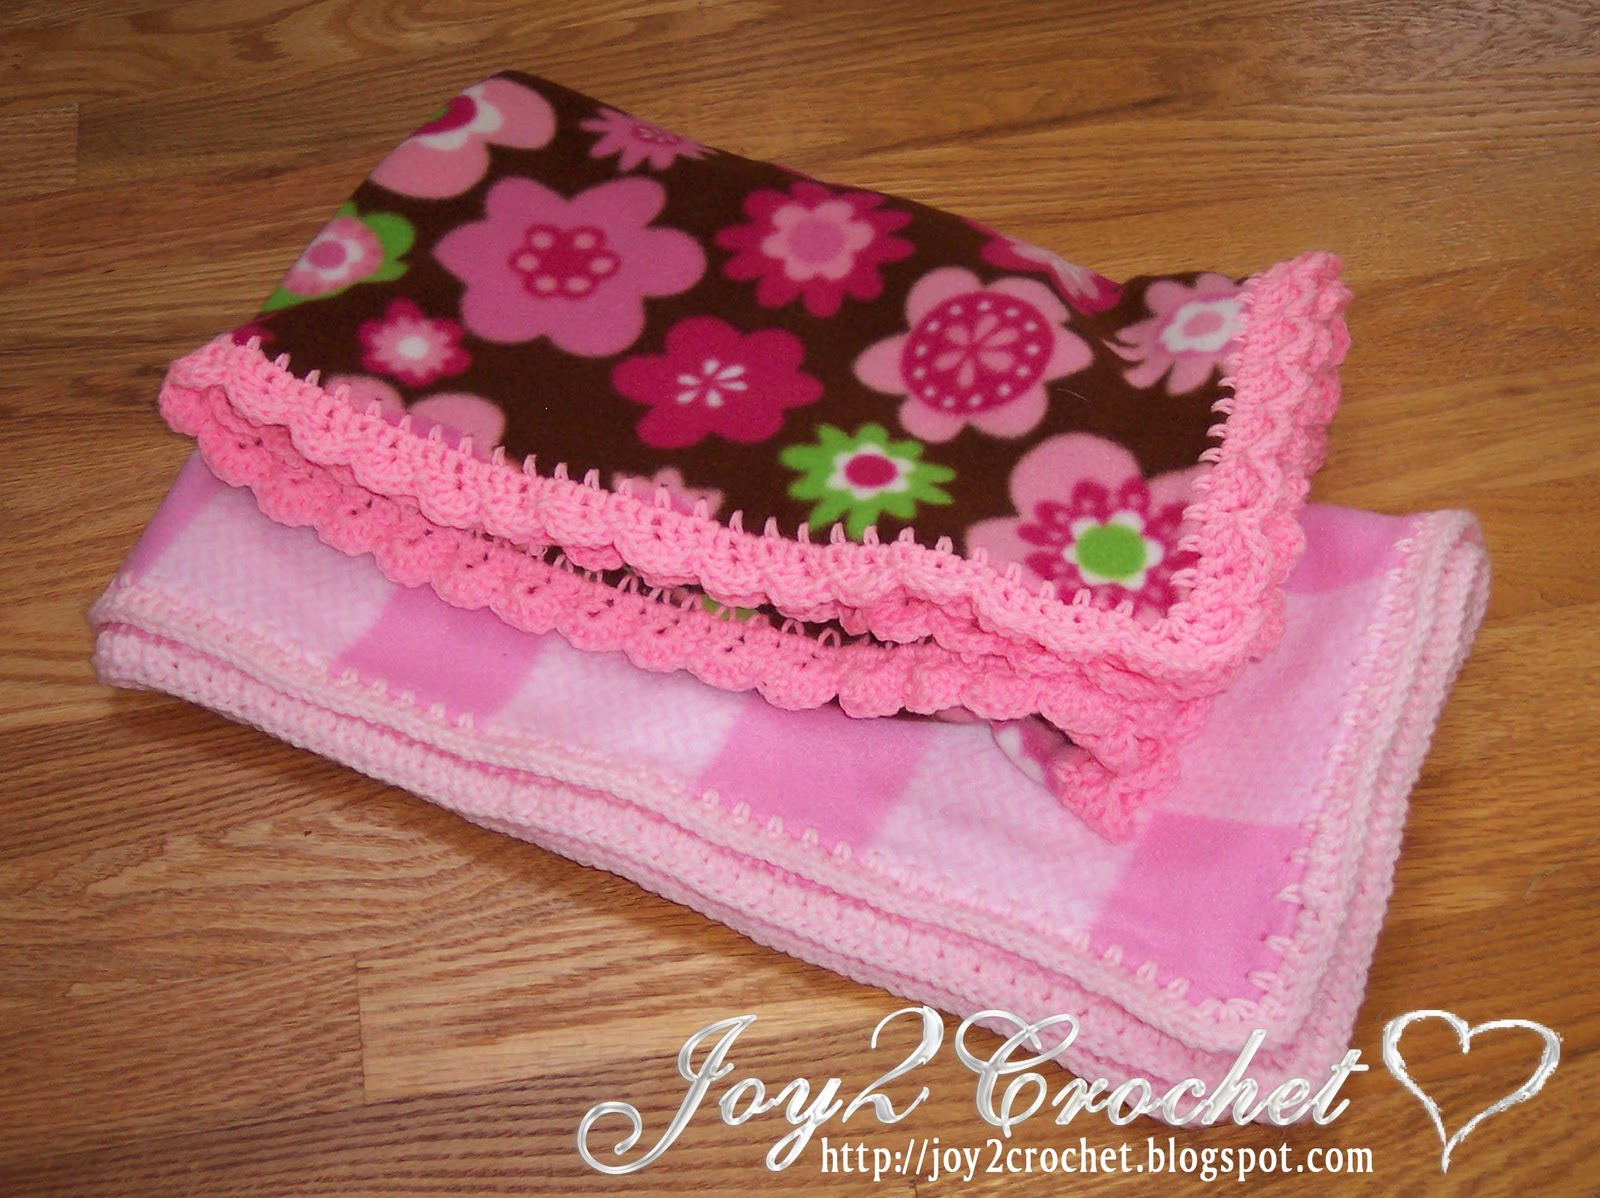 Crochet Patterns For Baby Blanket Edges : Joy 2 Crochet: Fleece Baby Blankets with Crocheted Edge